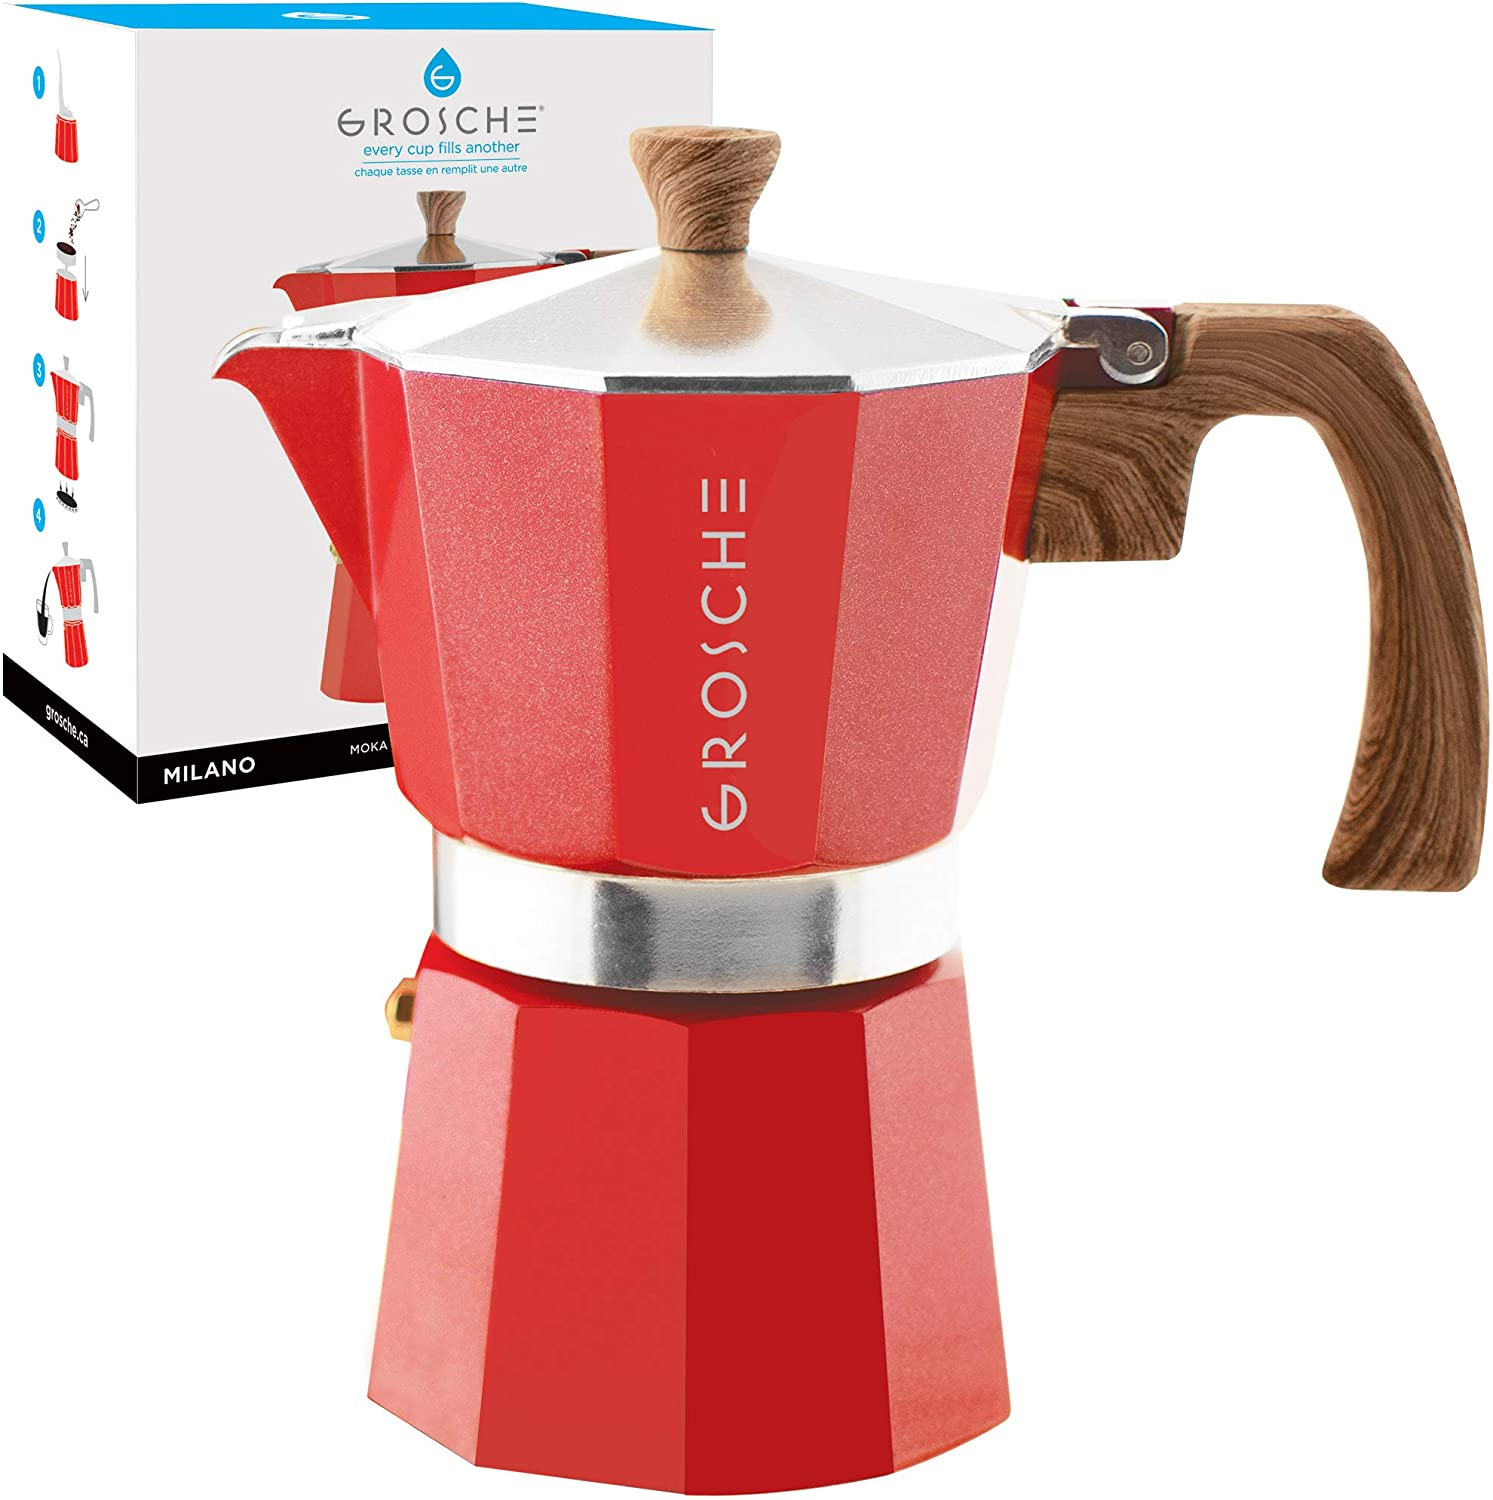 GROSCHE Milano Stovetop Espresso Maker Moka Pot 6 Cup, 9.3 oz, Red - Cuban Coffee Maker Stove top Coffee Maker Moka Italian Espresso greca Coffee ...